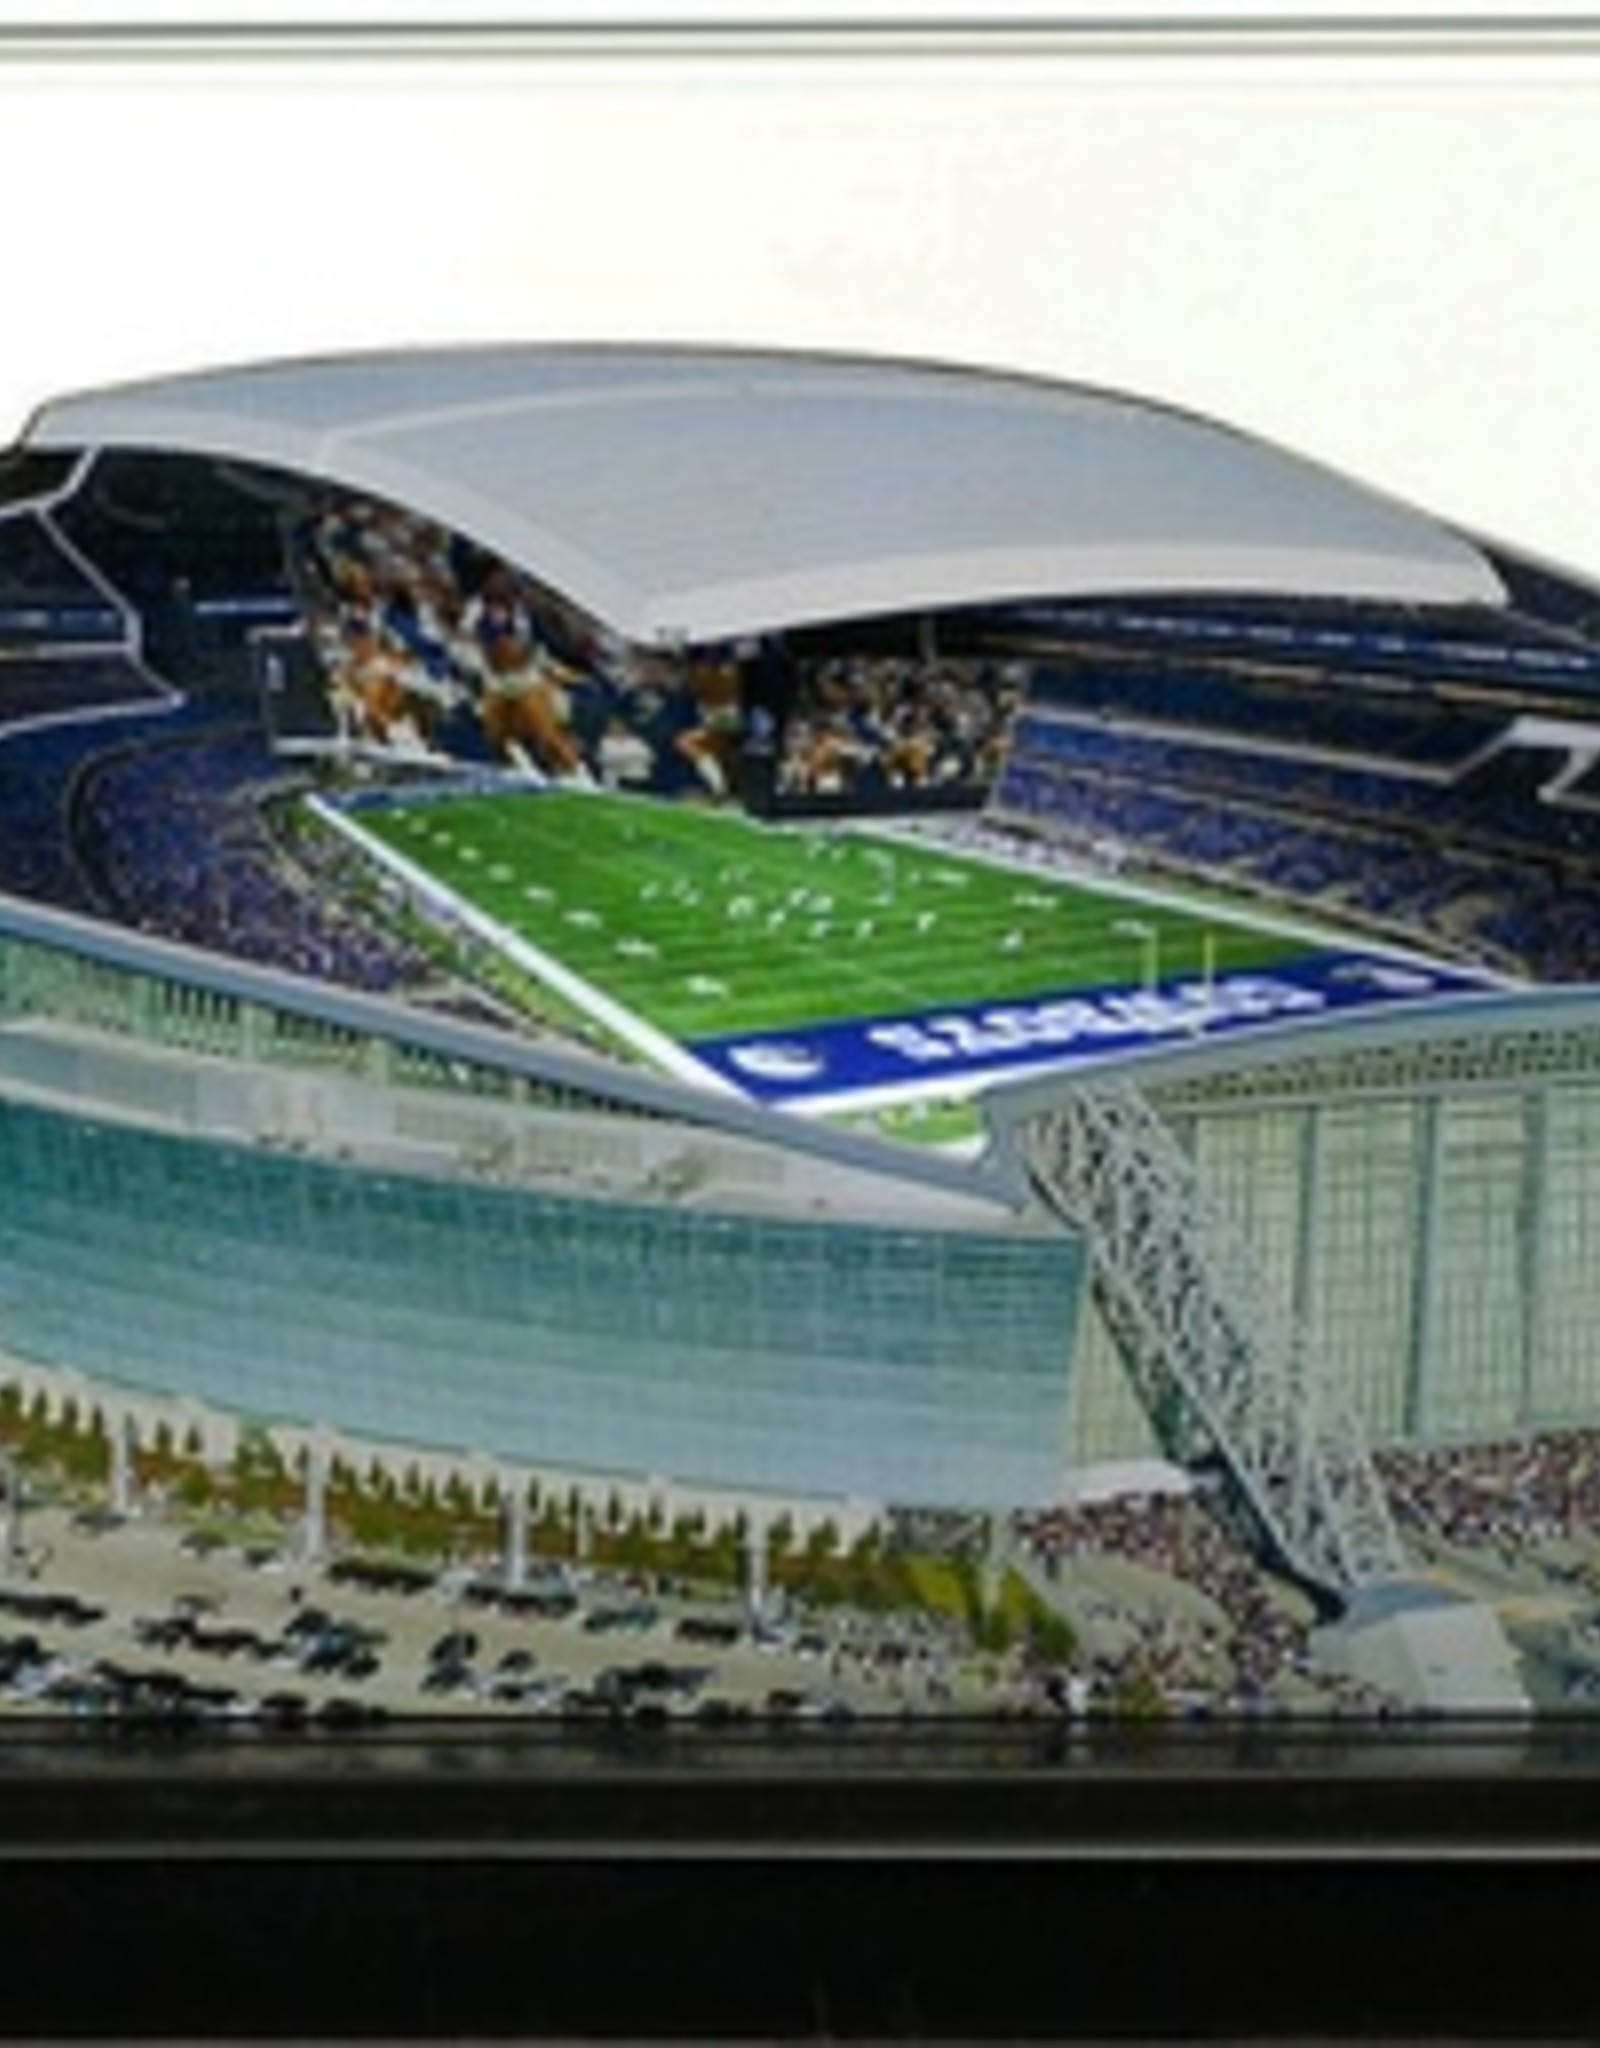 HOMEFIELDS Dallas Cowboys 19IN Lighted Replica AT&T Stadium